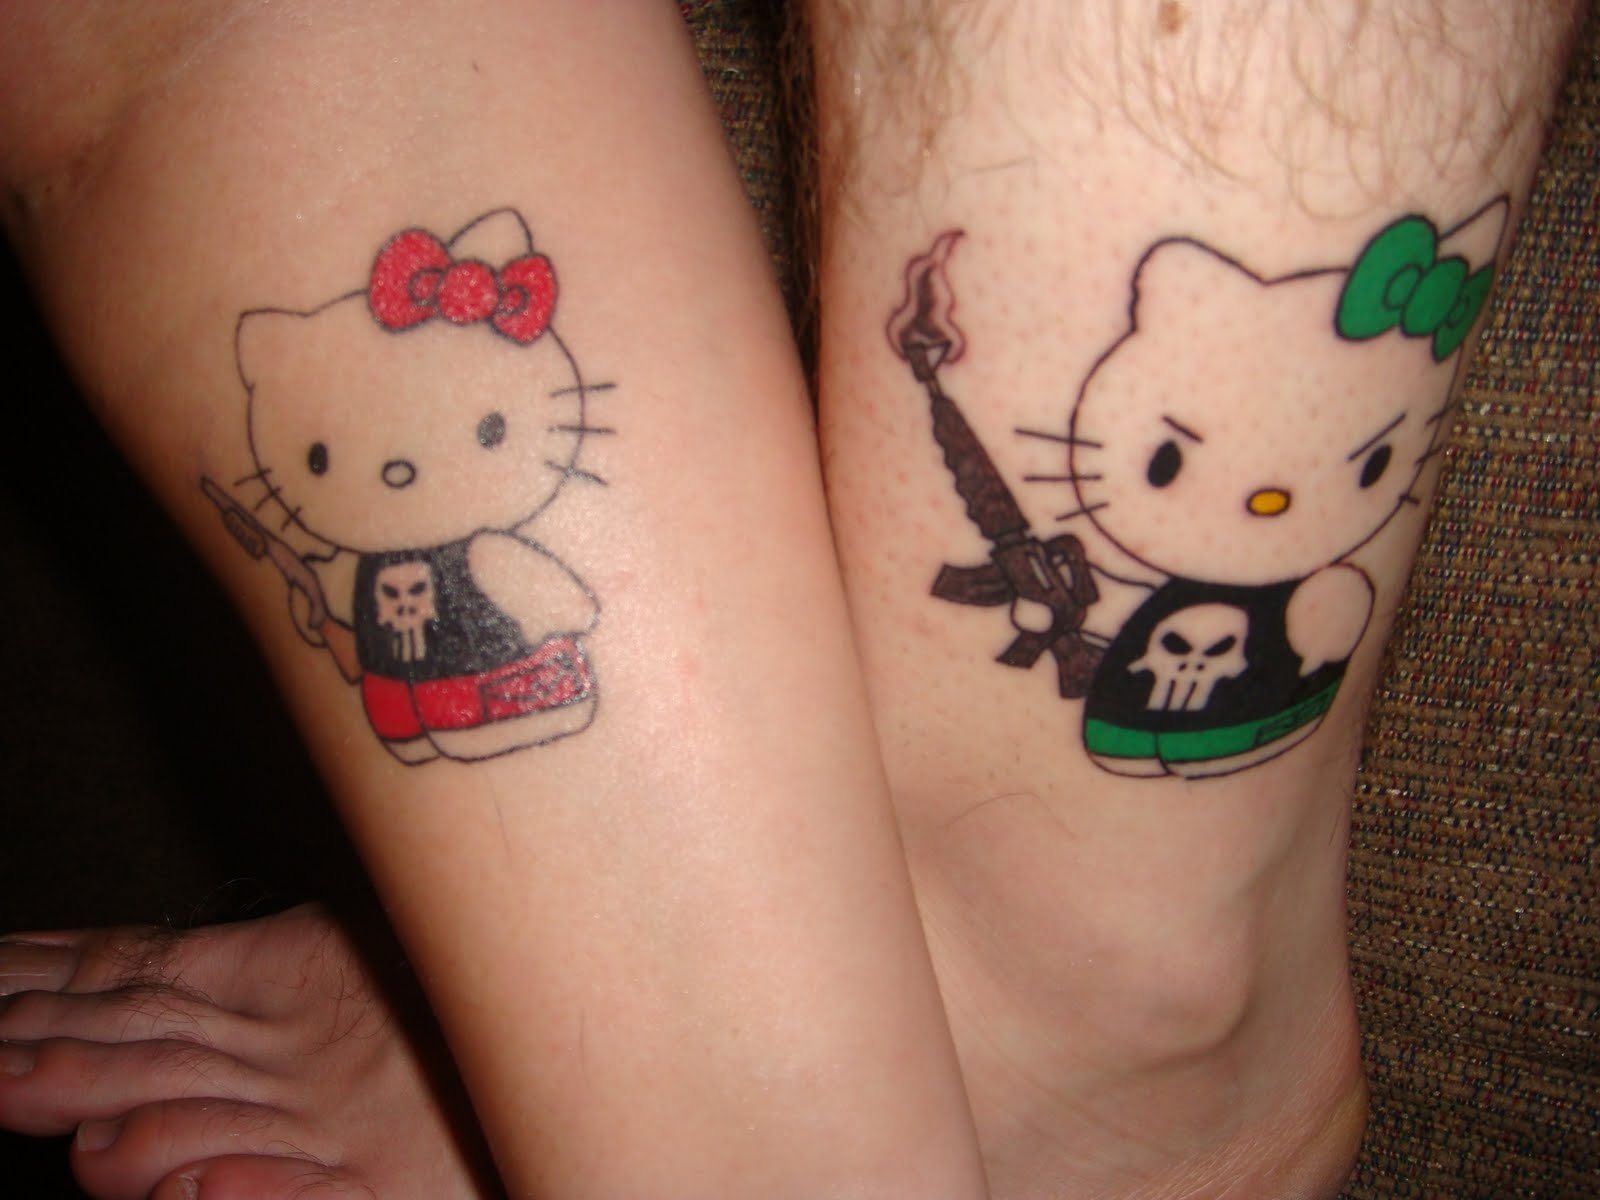 Check Out Hello Kitty From Cool Matching Tattoos For Couples Hello Kitty Tattoos Cute Matching Tattoos Couple Tattoos